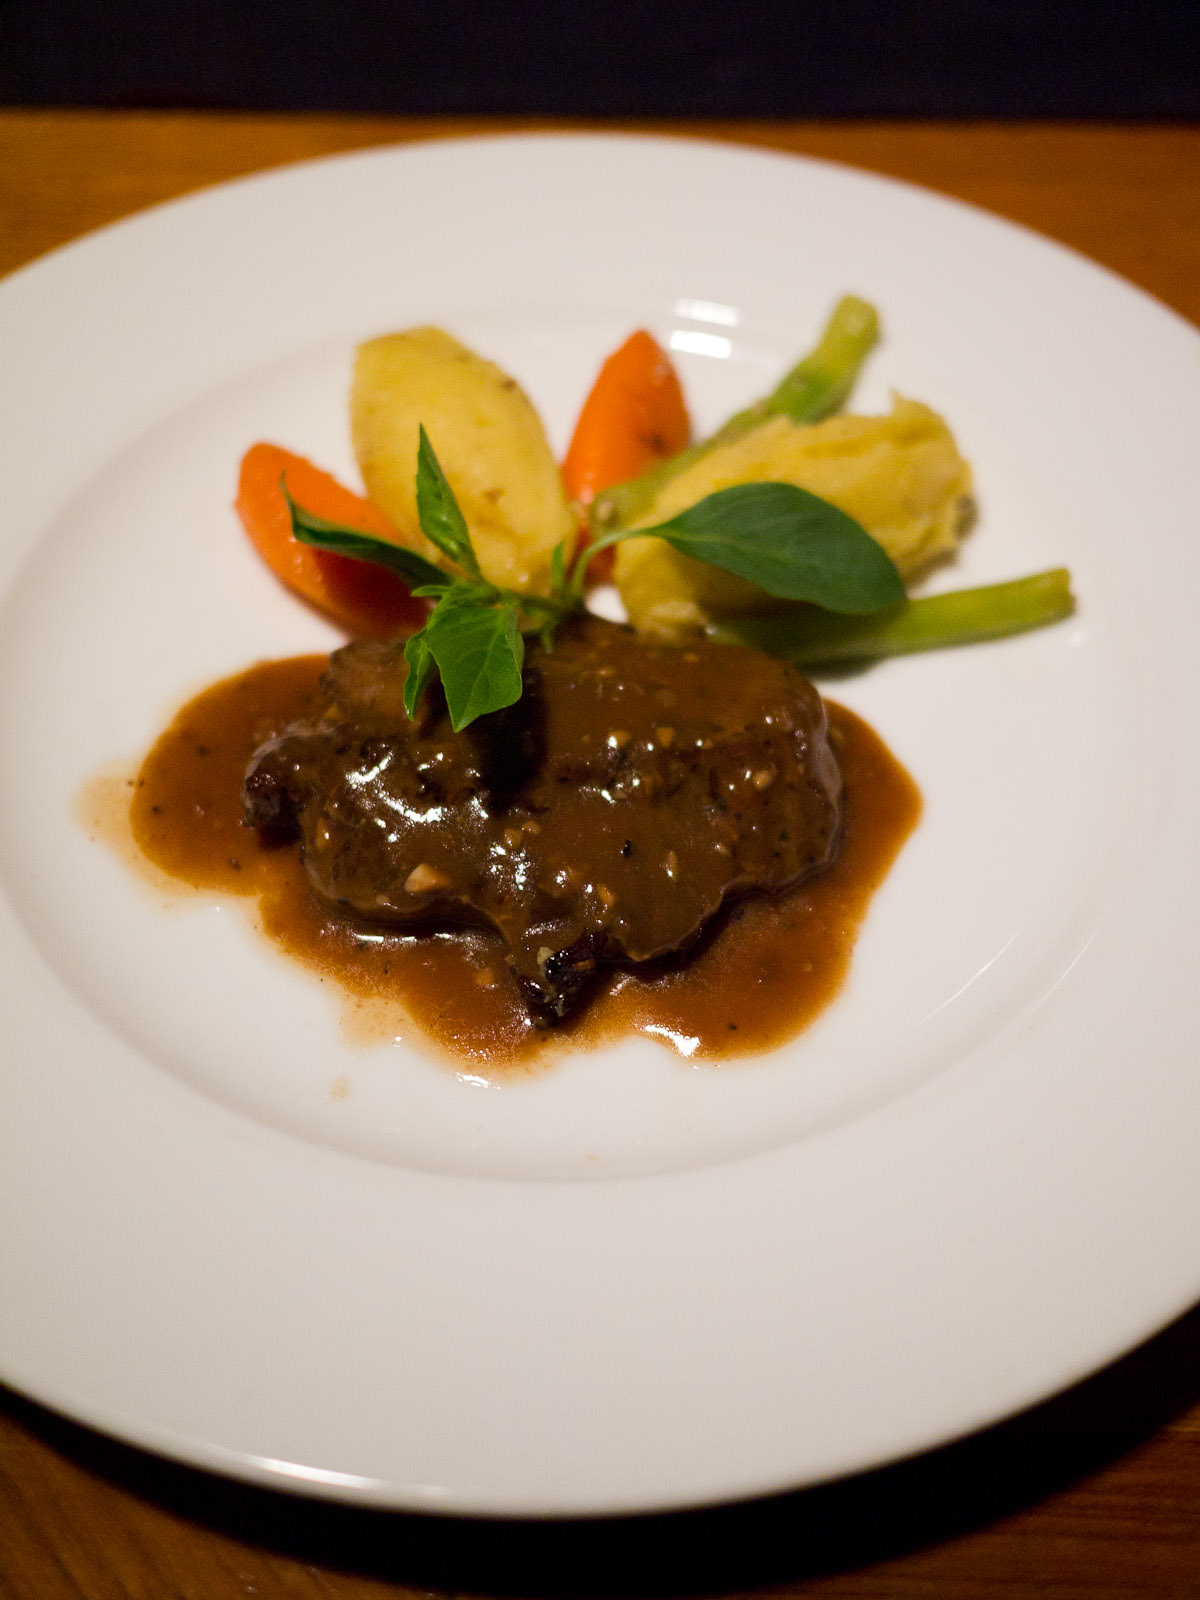 Ostrich with Kampot pepper sauce with potato mash and vegetables